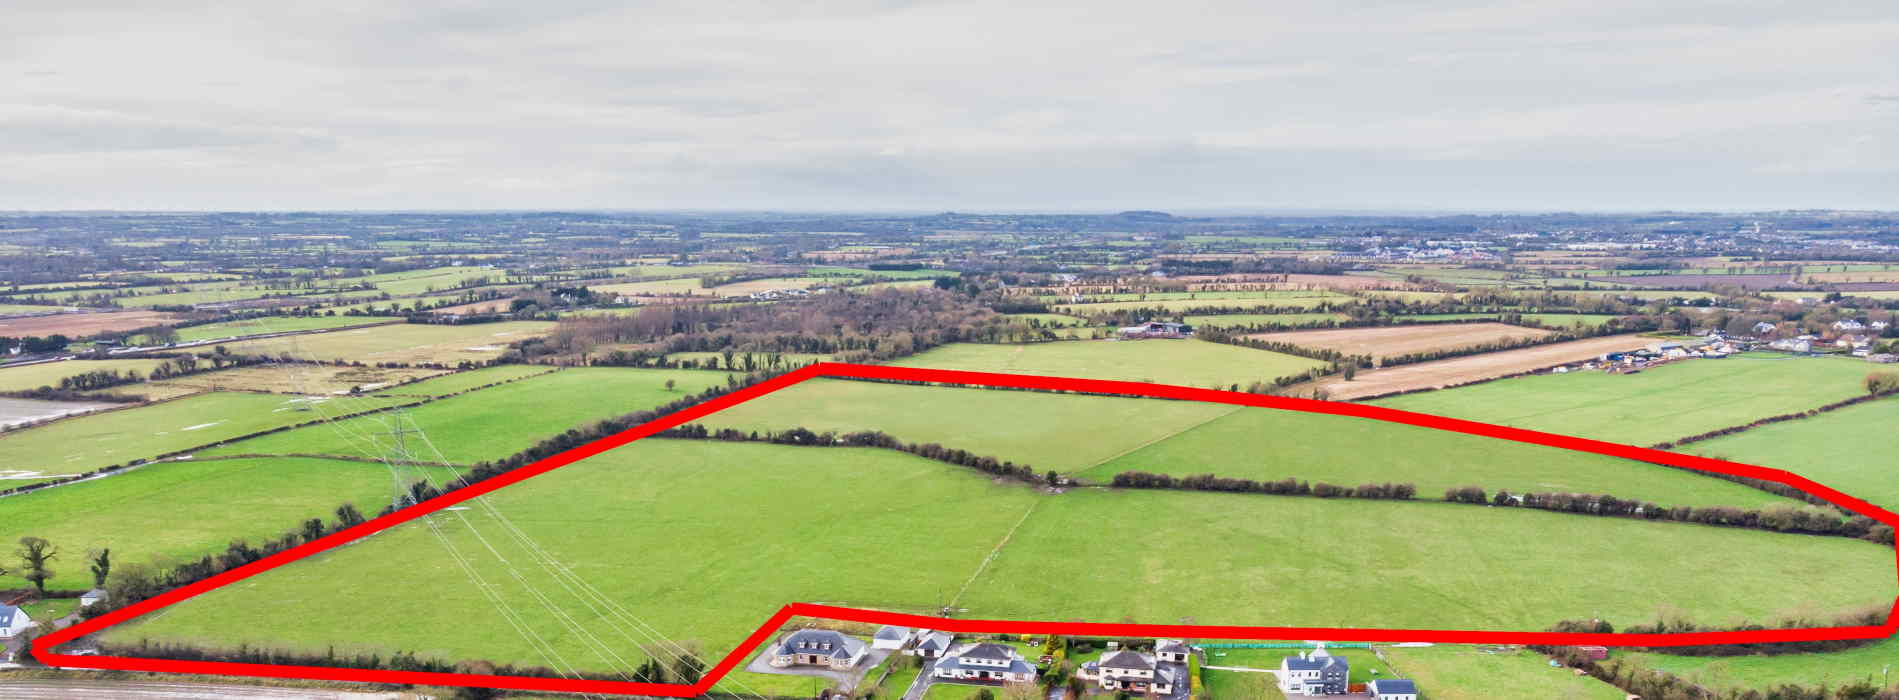 On The Market From The Property Shop (Dunboyne): Impressive 61.72 Acre Residential Farm Holding (7 Bedroom Farmhouse)